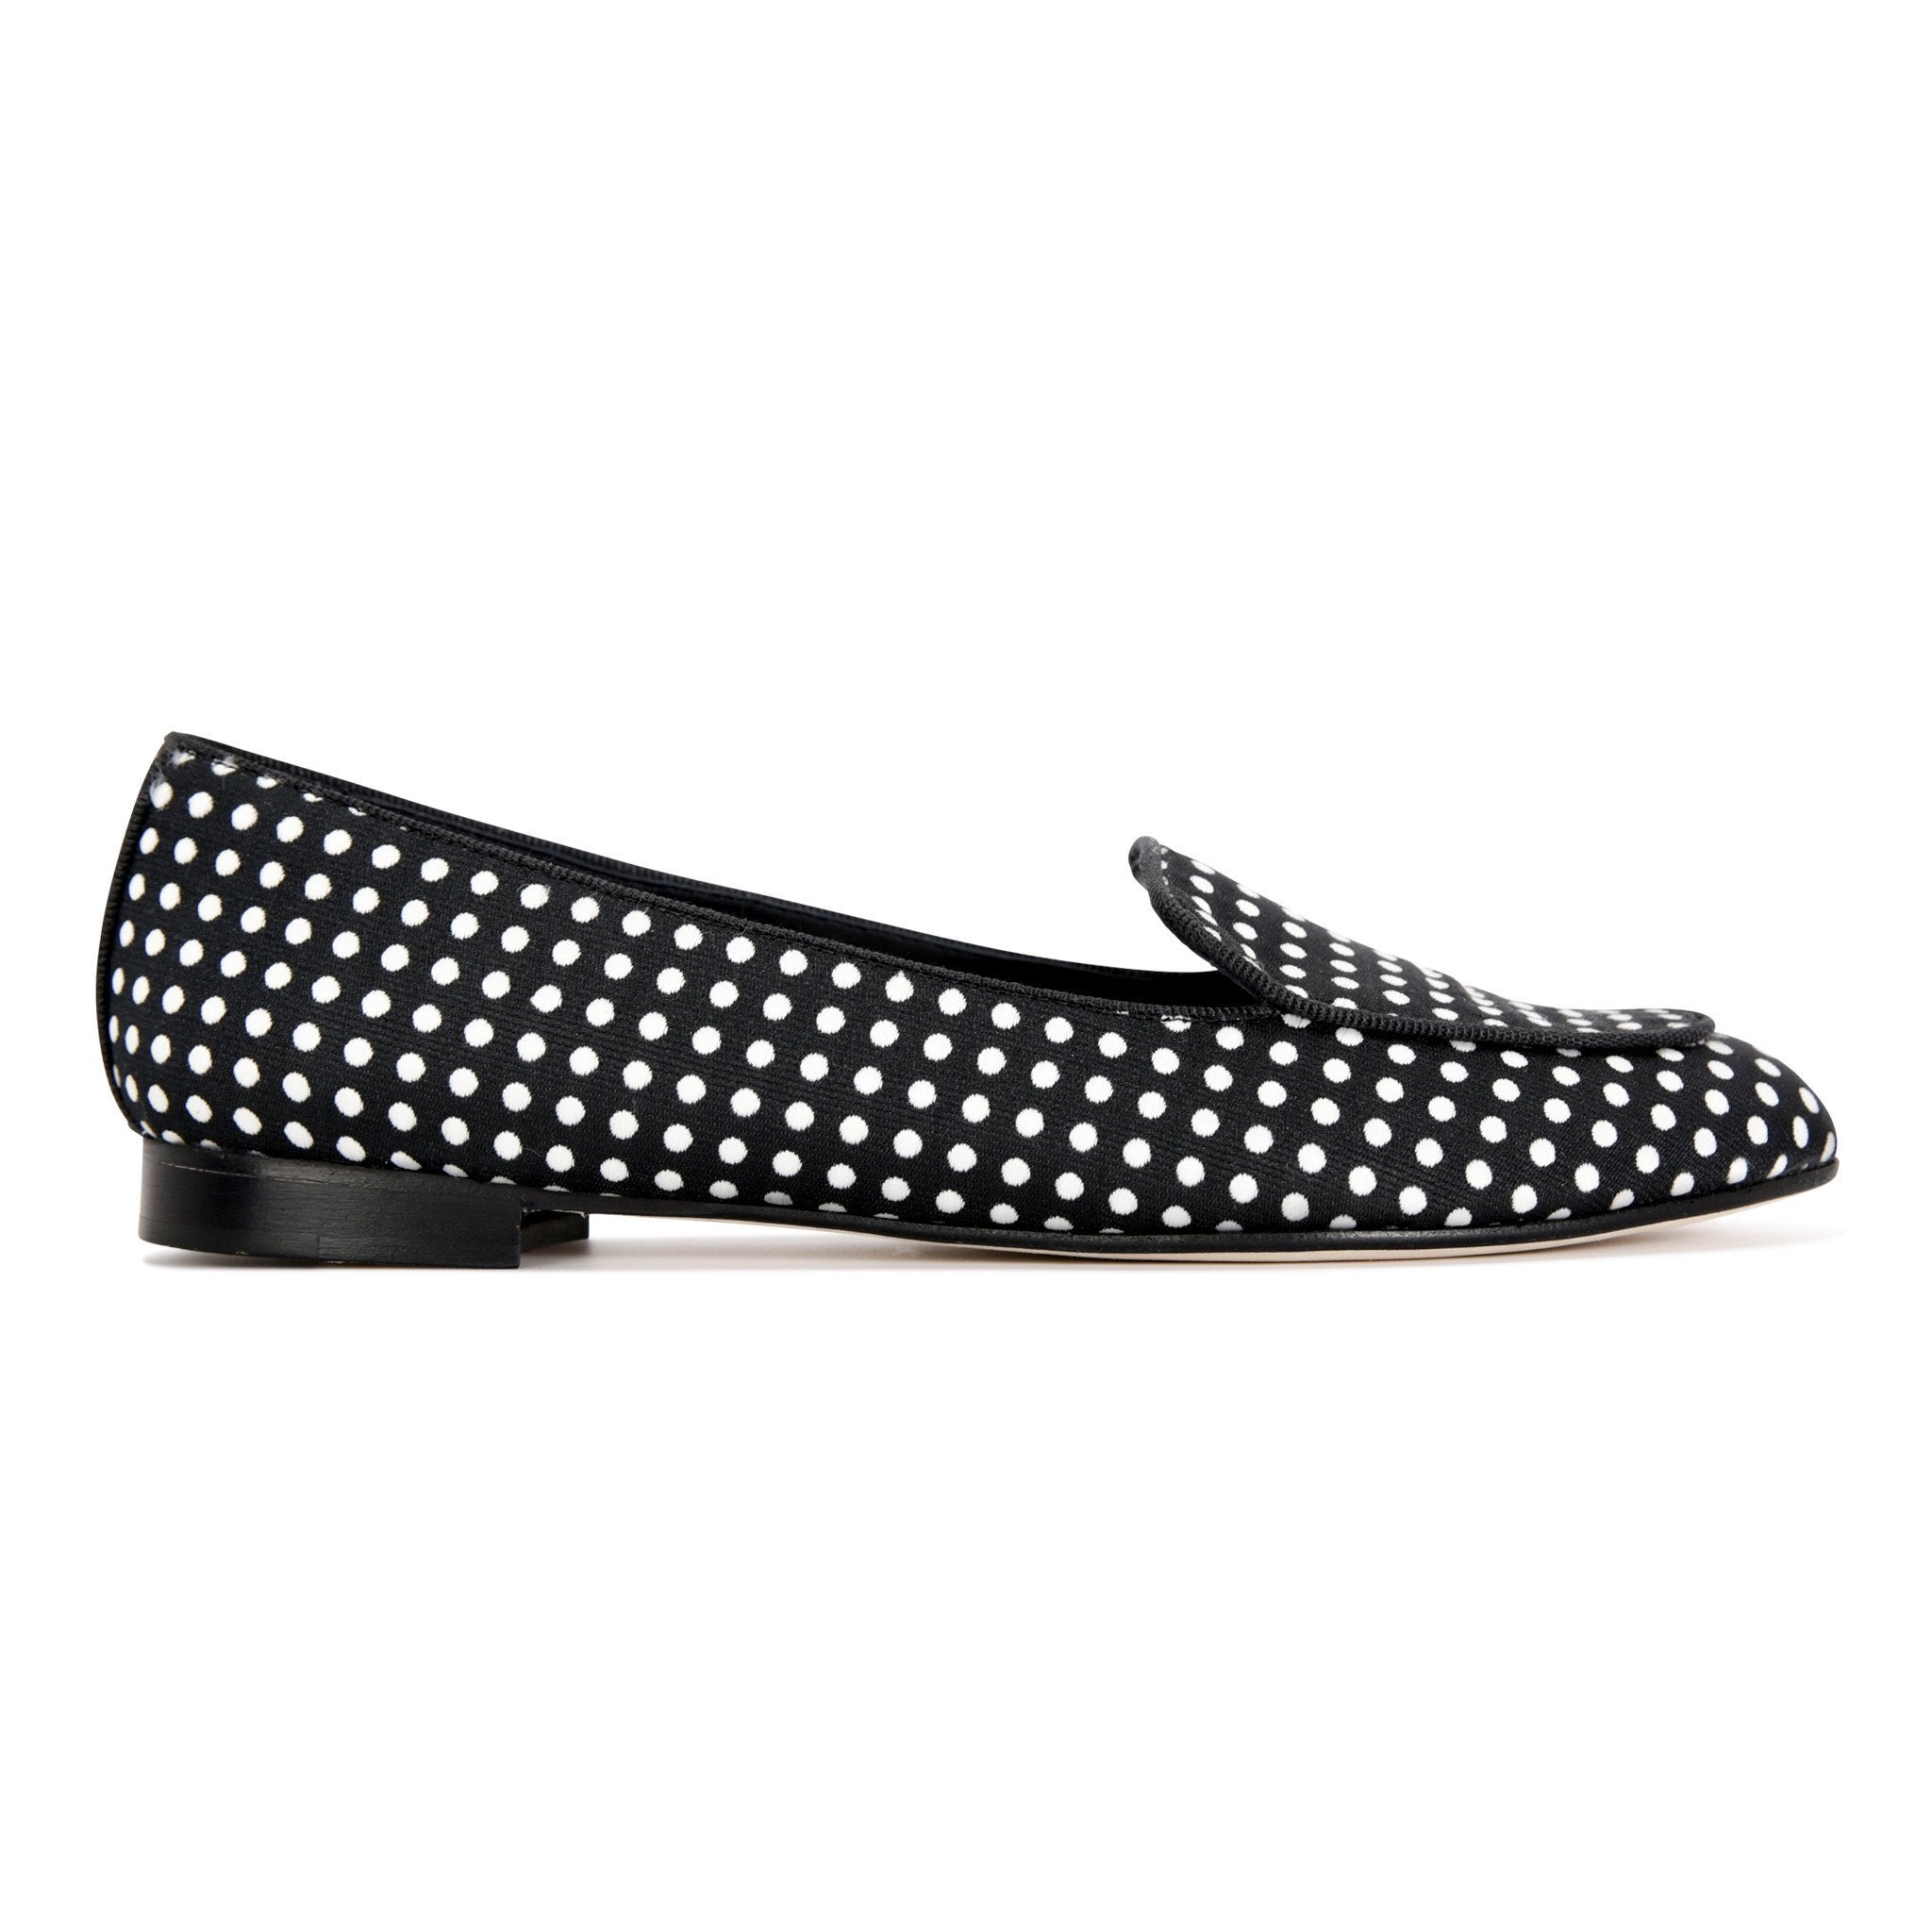 REGGIO - Textile Polka Dot Black + White, VIAJIYU - Women's Hand Made Sustainable Luxury Shoes. Made in Italy. Made to Order.